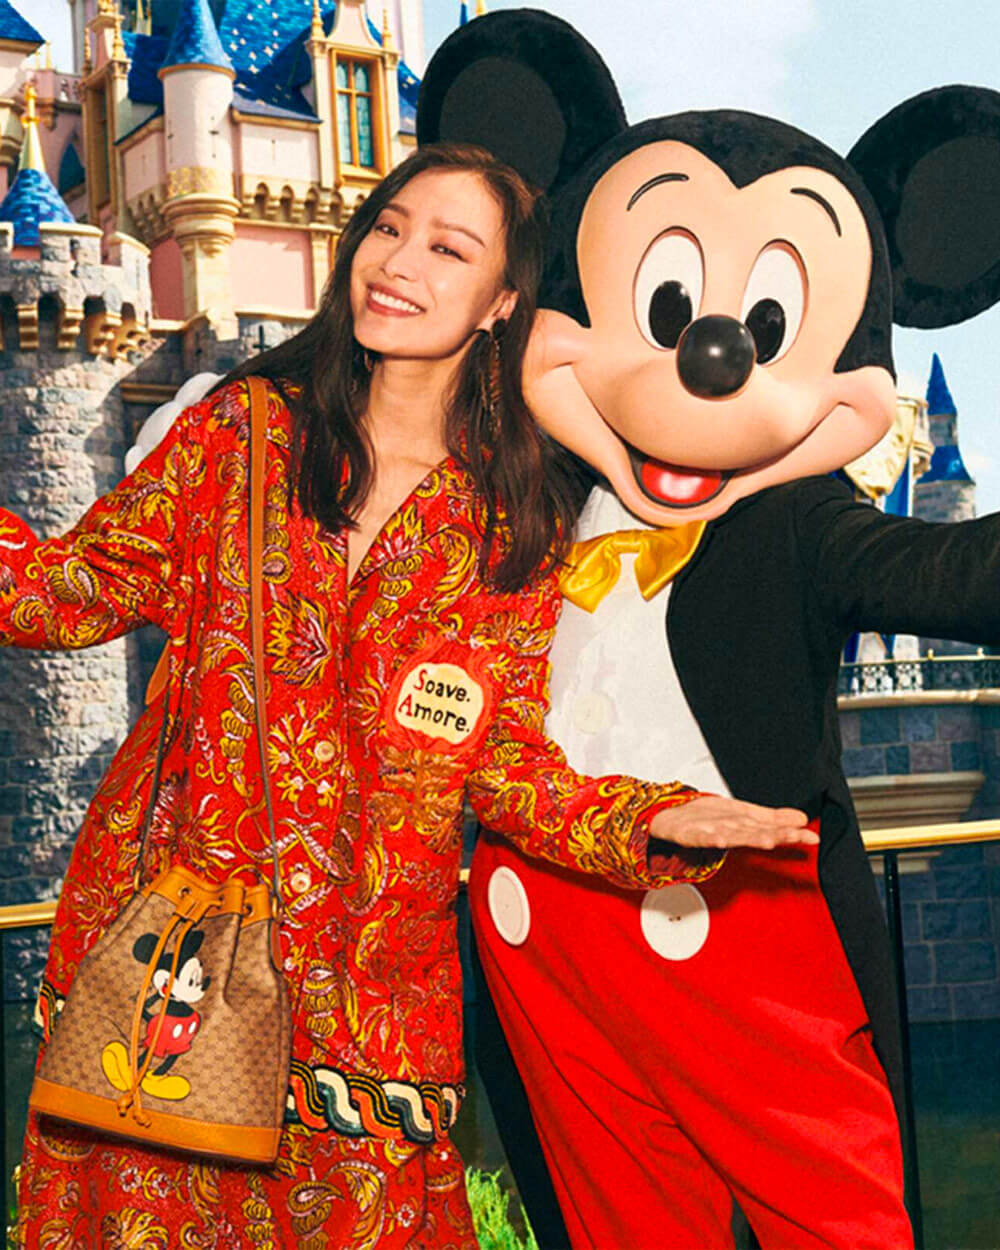 Gucci Mickey Mouse collection for Chinese New Year